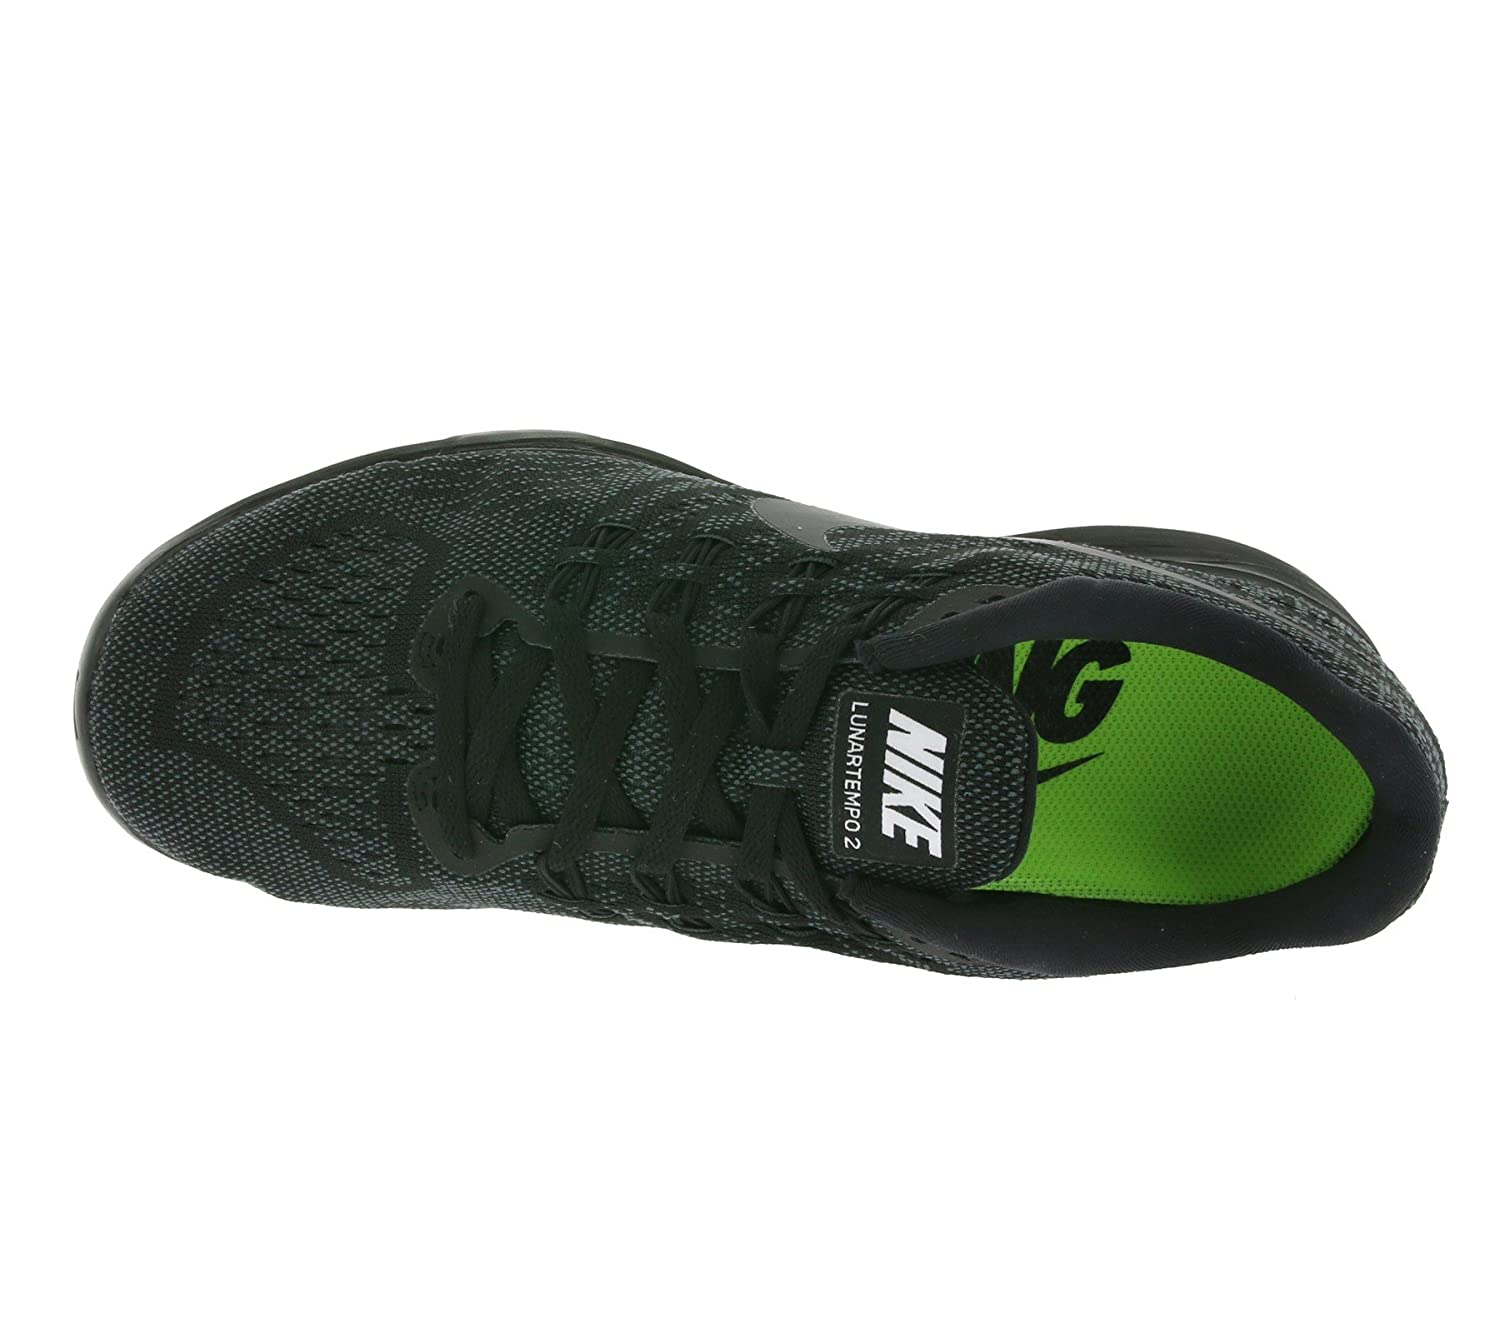 ... australia nike lunartempo 2 black black anthracite mens running shoes buy  online at low prices in 48f8ee1c6